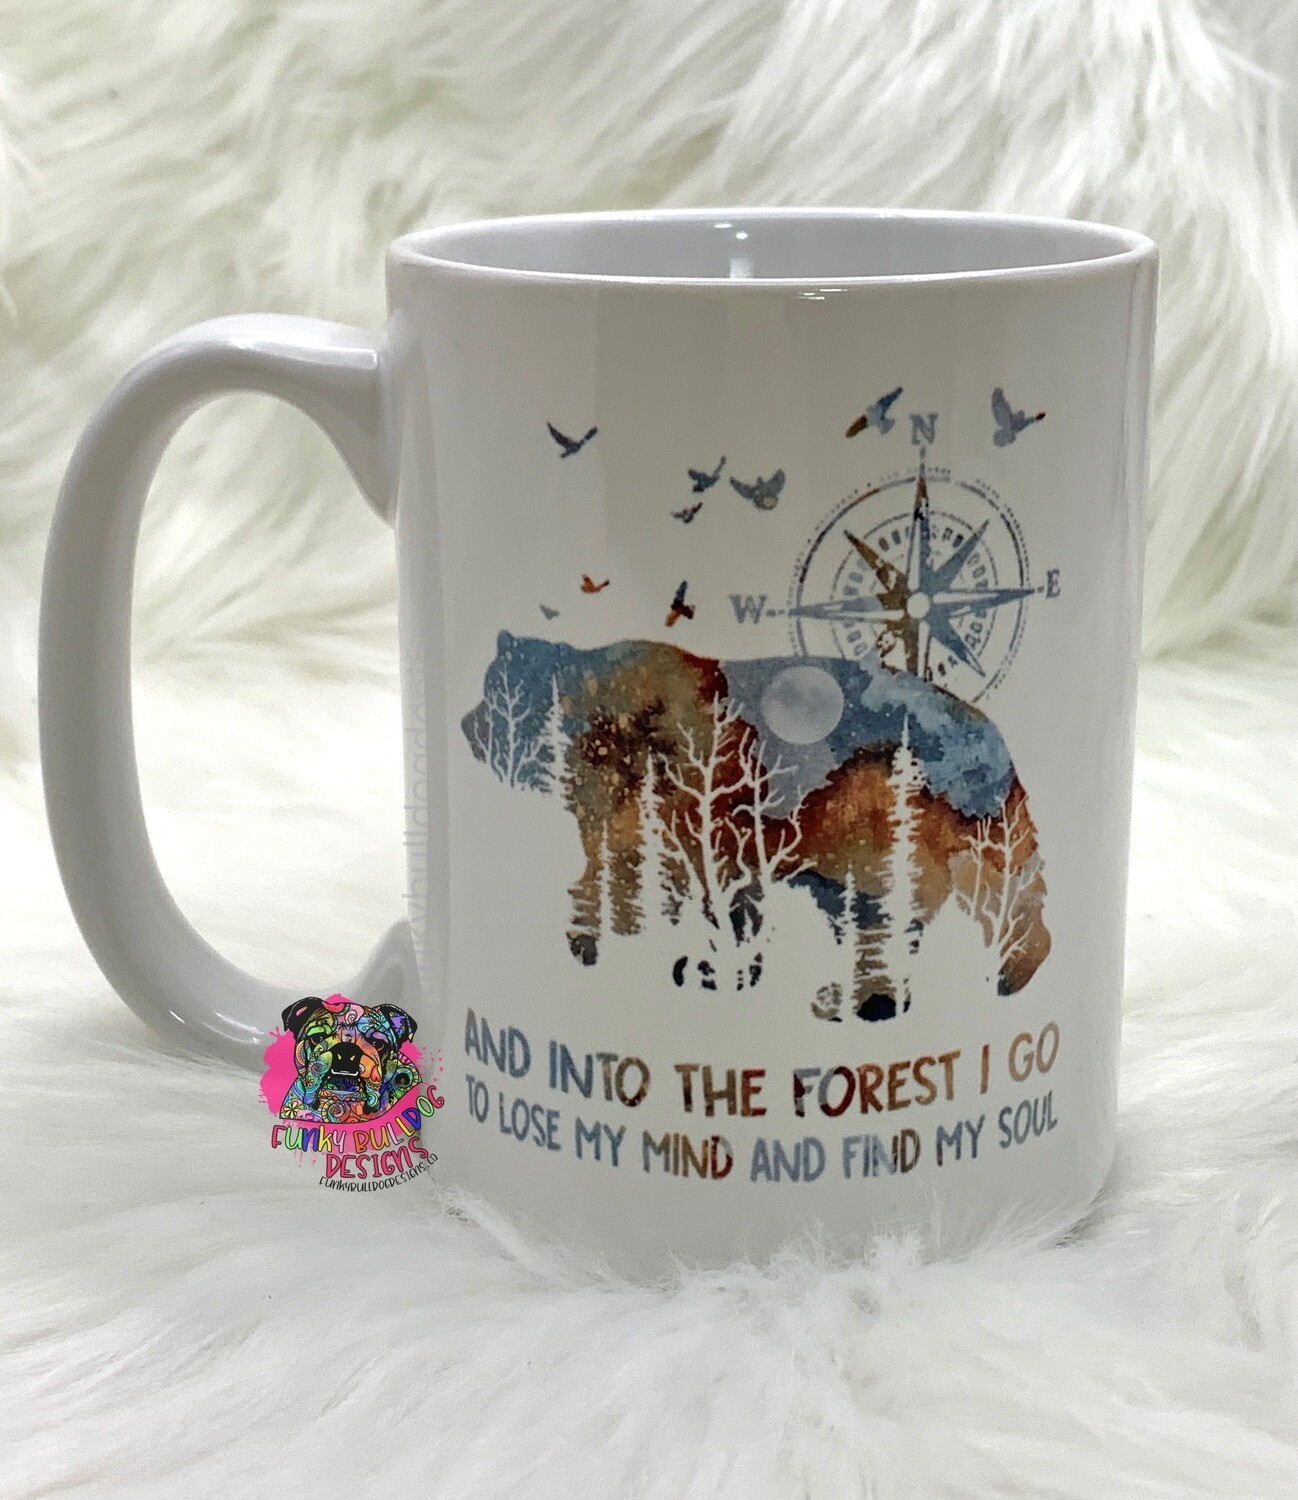 15oz Ceramic Mug - and into the forest I go to lose my mind and find my soul